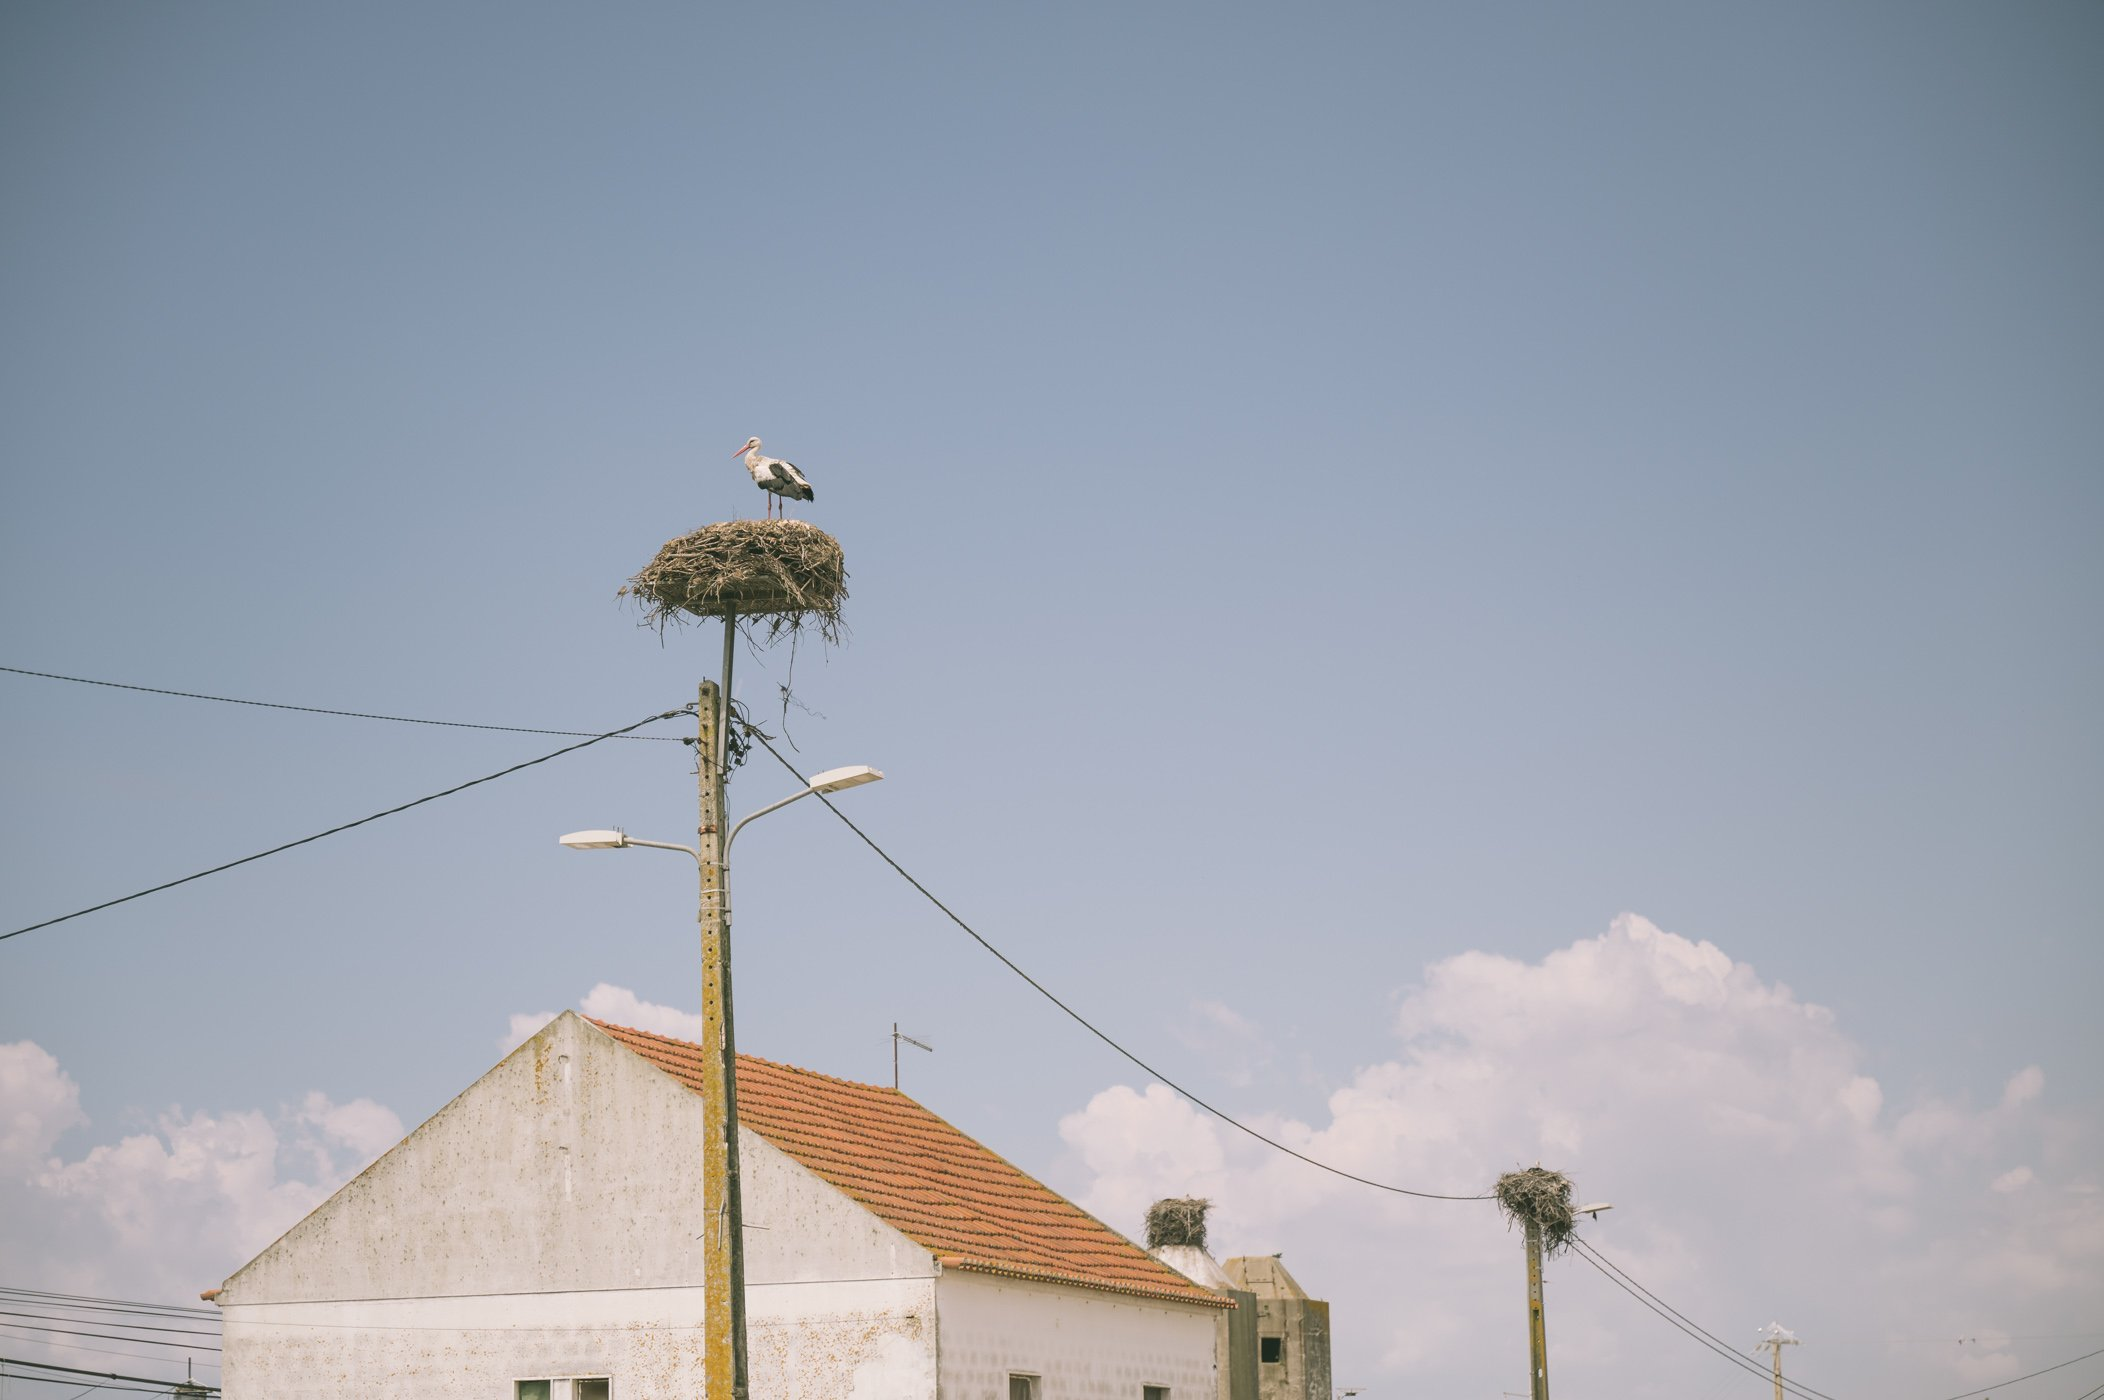 Storks nests are everywhere in the Alentejo region of Portugal